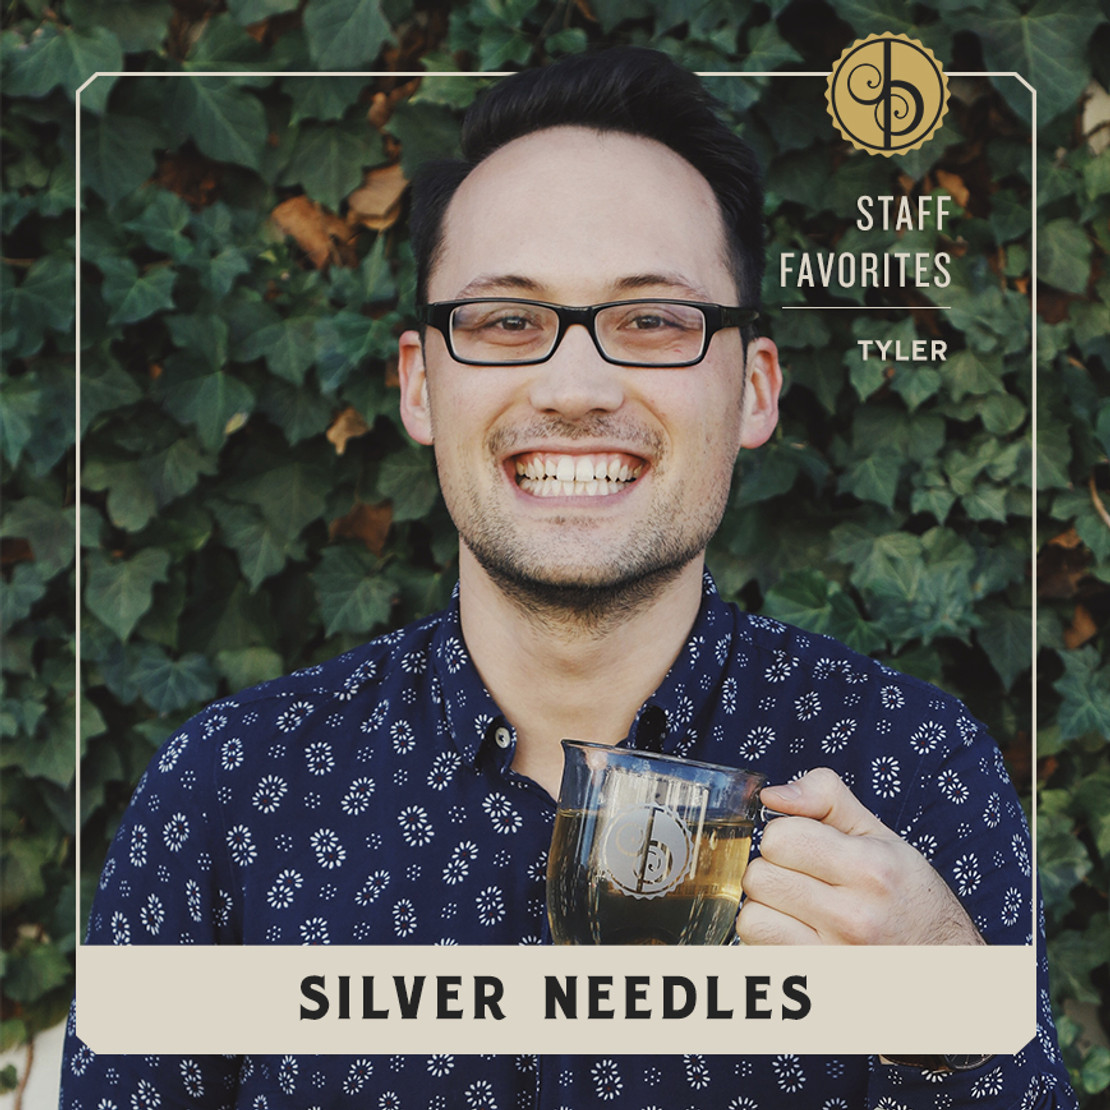 Staff Favorites: Tyler & Silver Needles